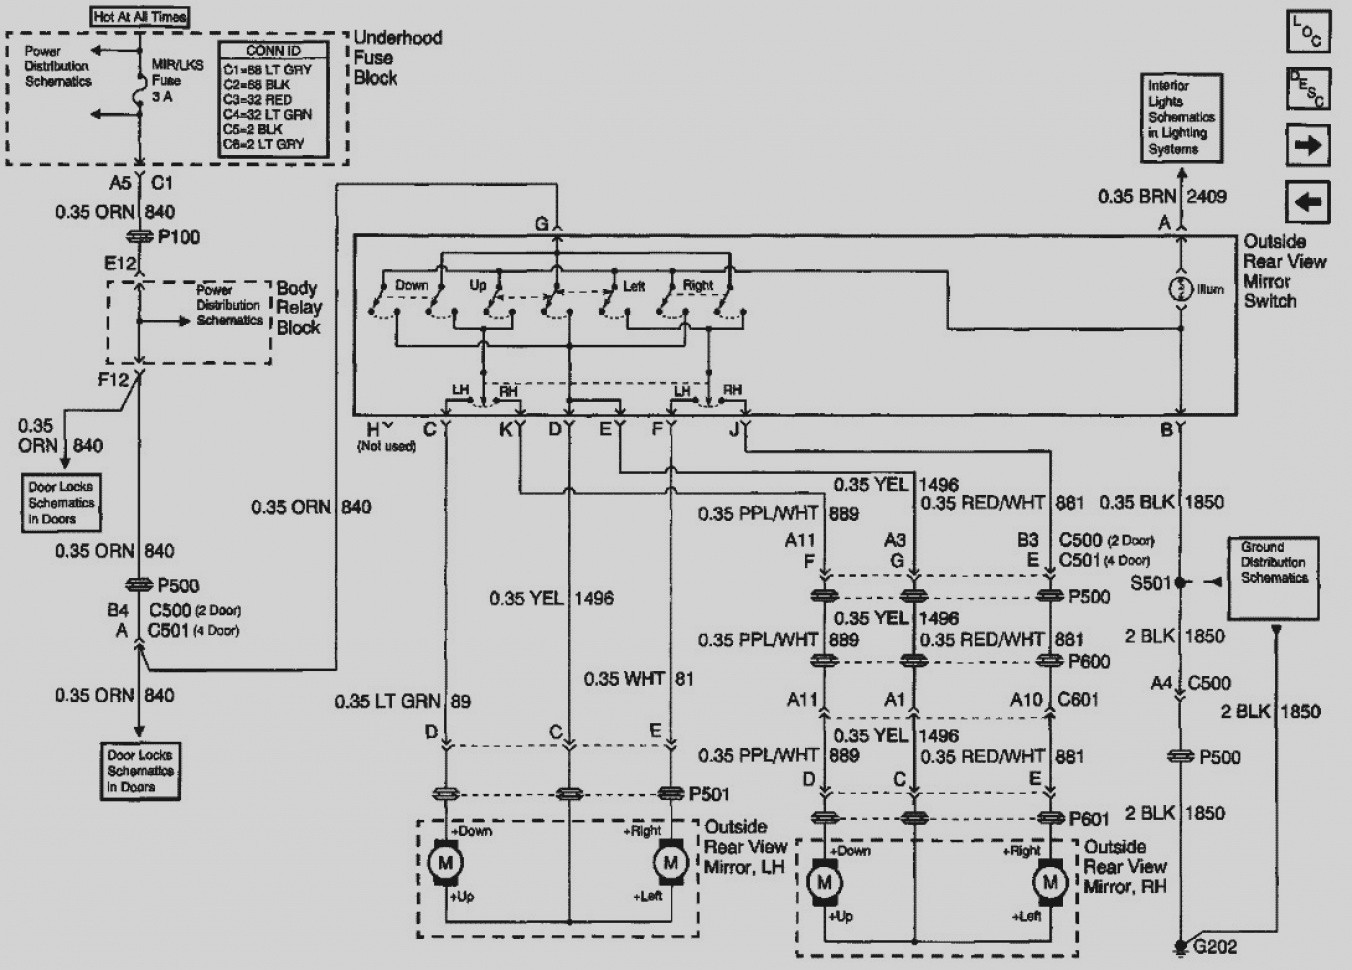 wiring diagram 98 blazer schematics wiring diagrams u2022 rh seniorlivinguniversity co